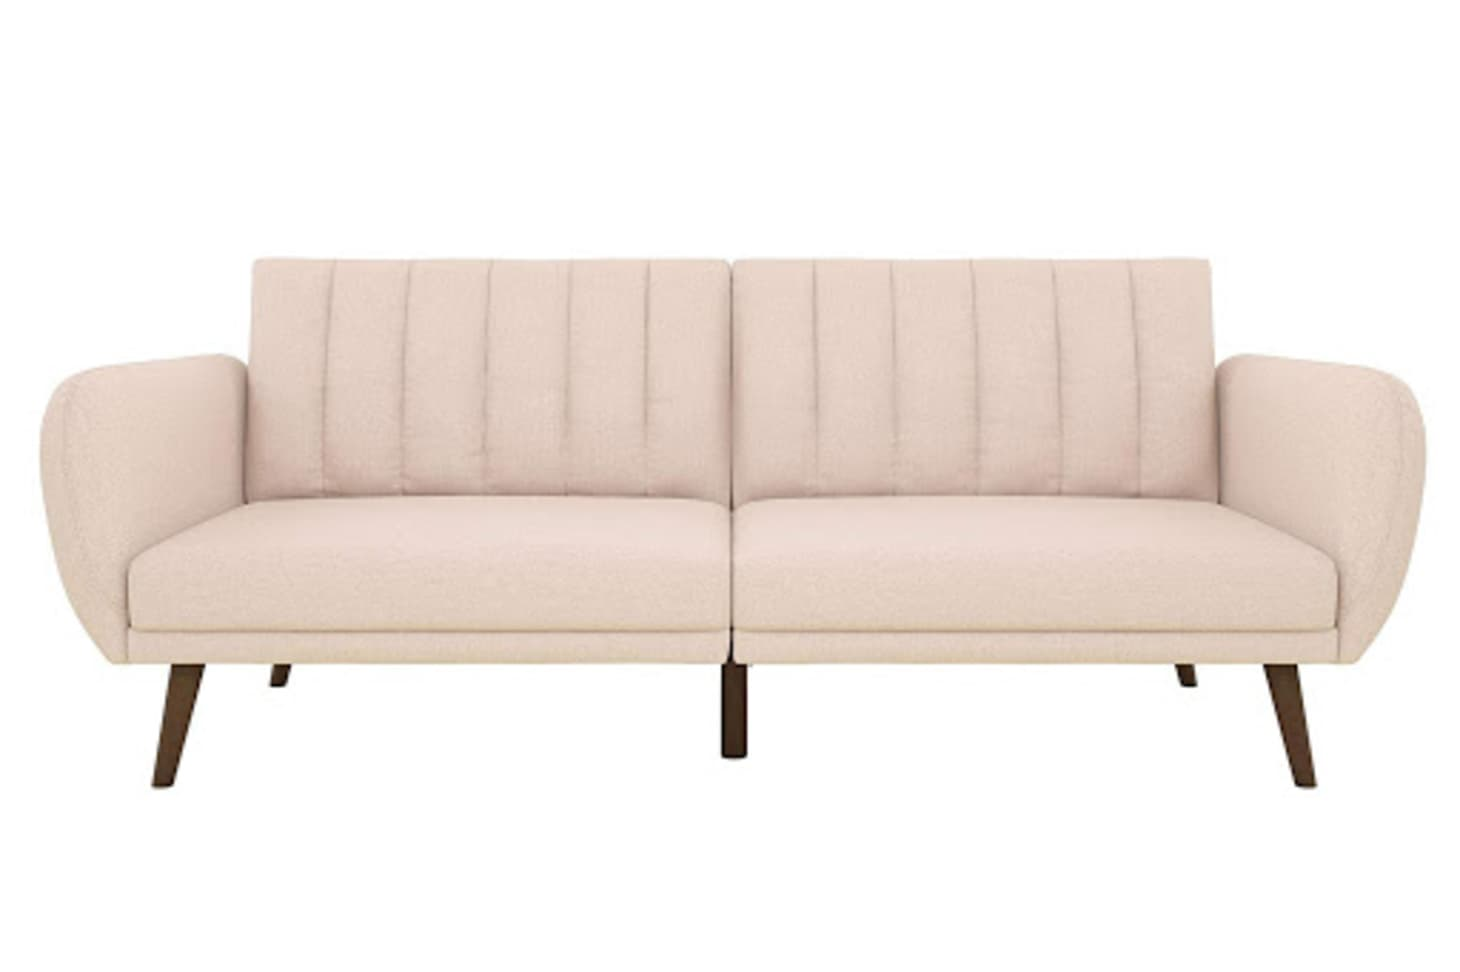 Affordable and Stylish Sofas Under $1000 | Apartment Therapy